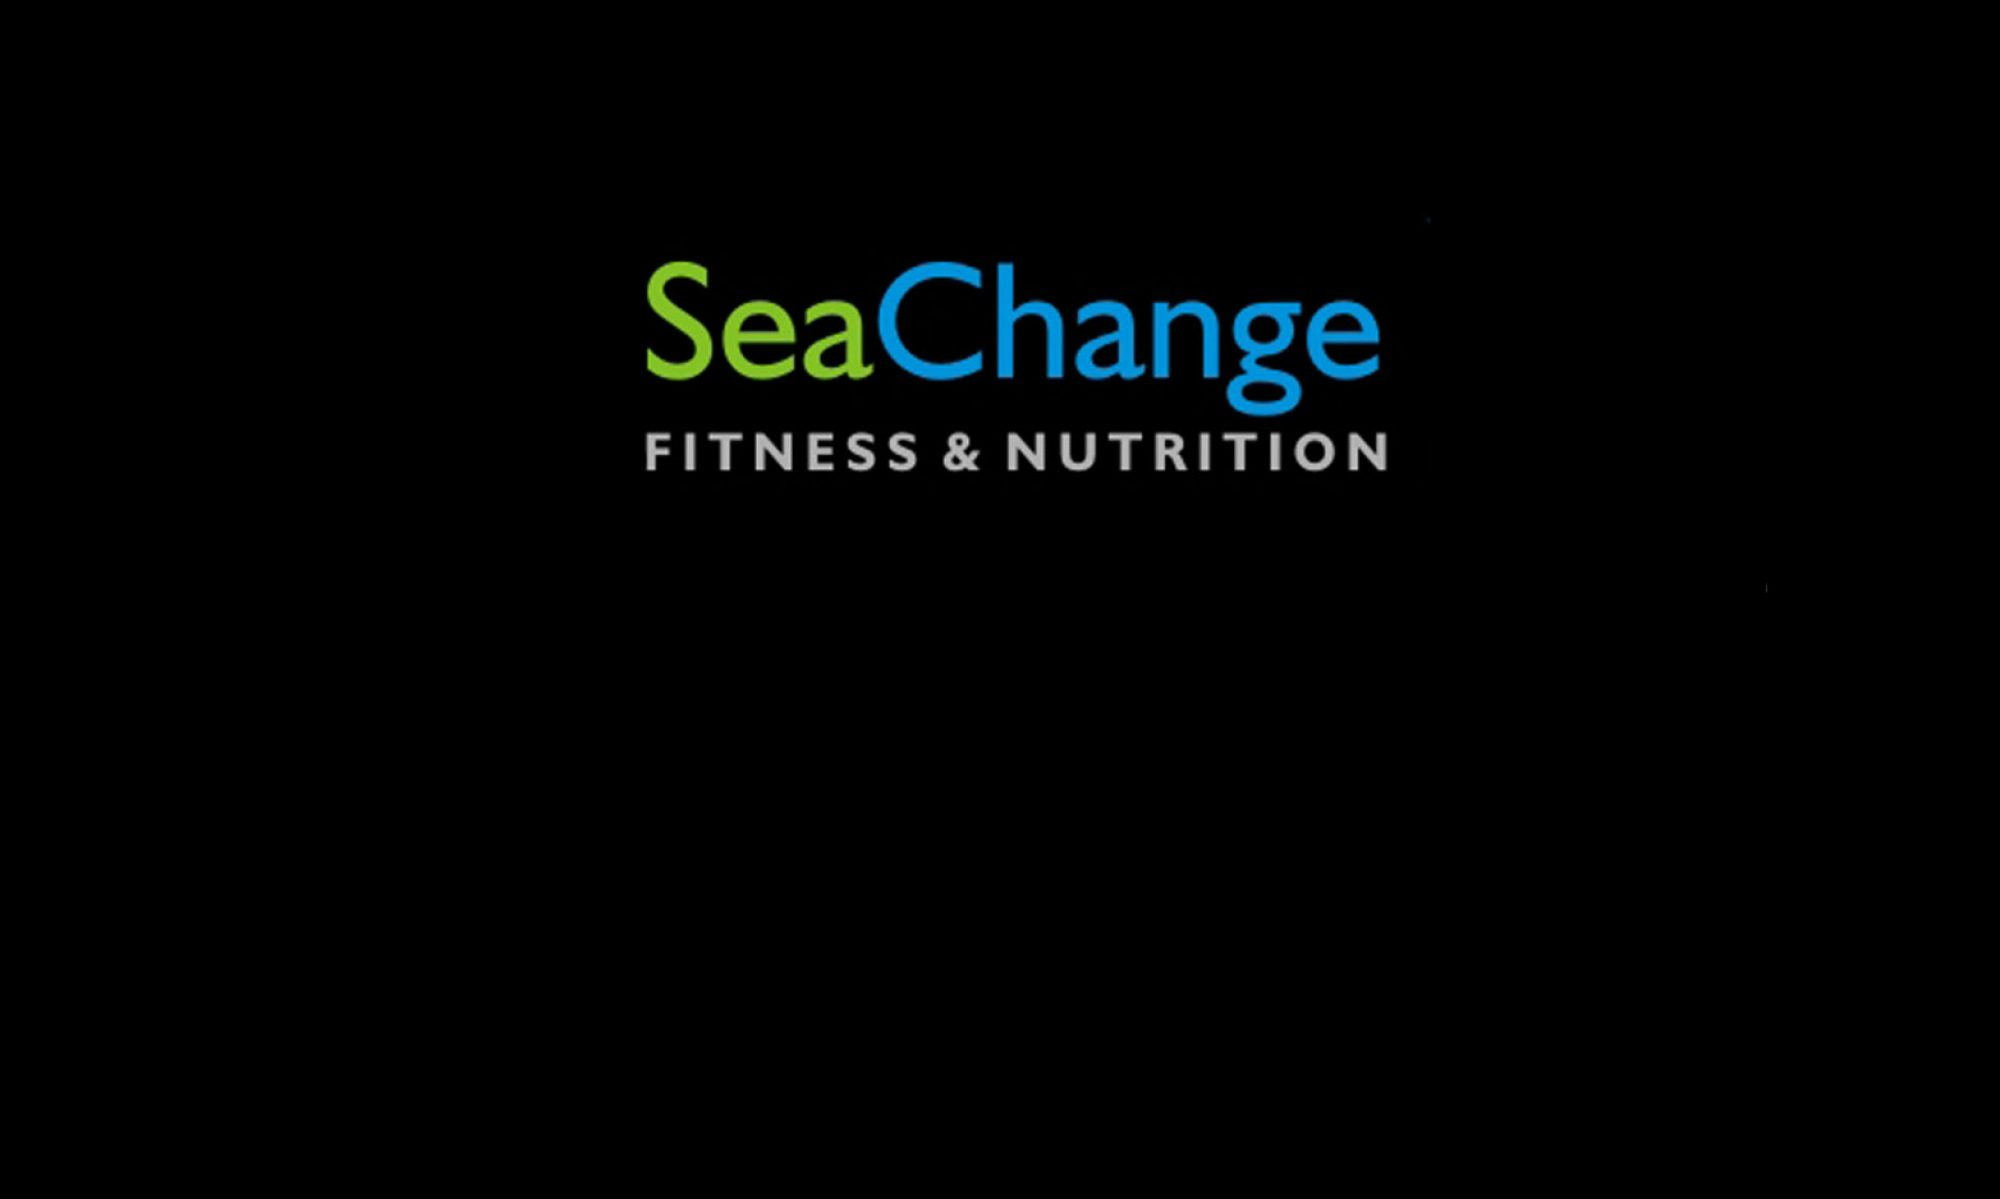 We Are Sea Change Fitness